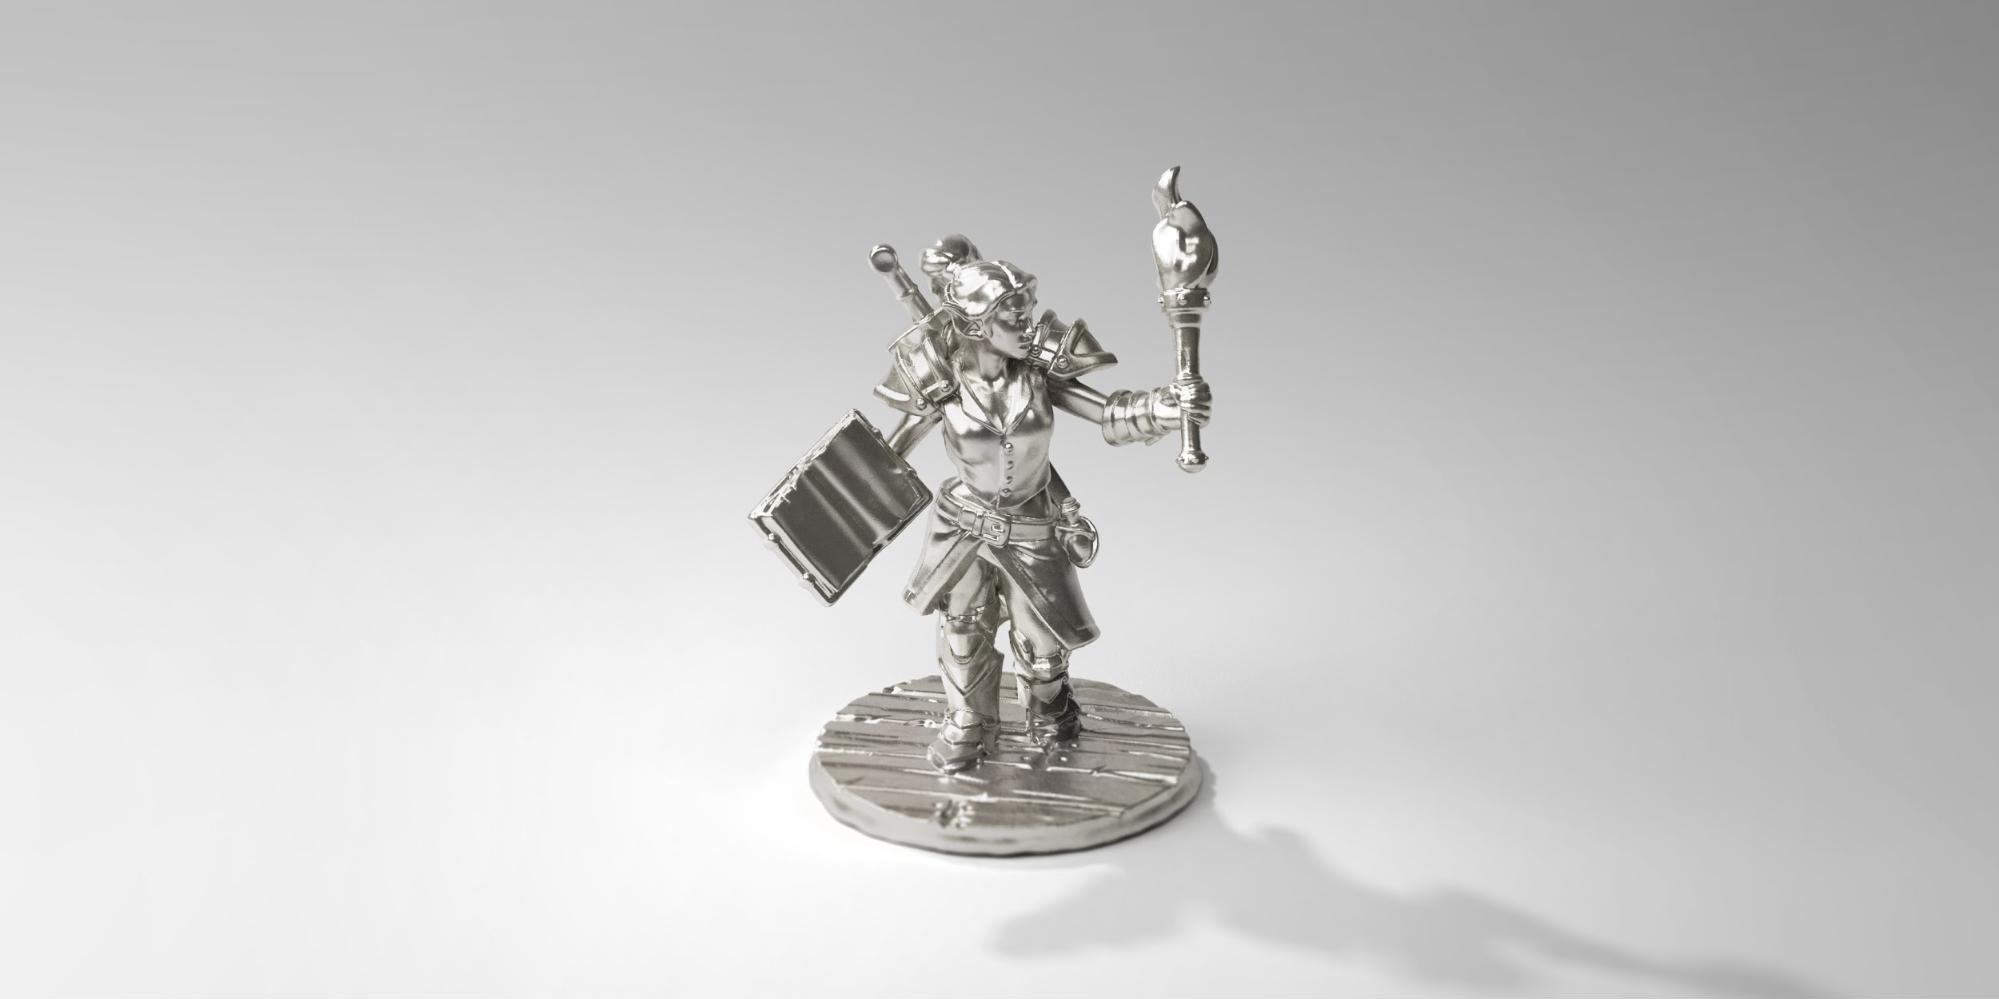 This explorer figurine cost $8 in pewter material.